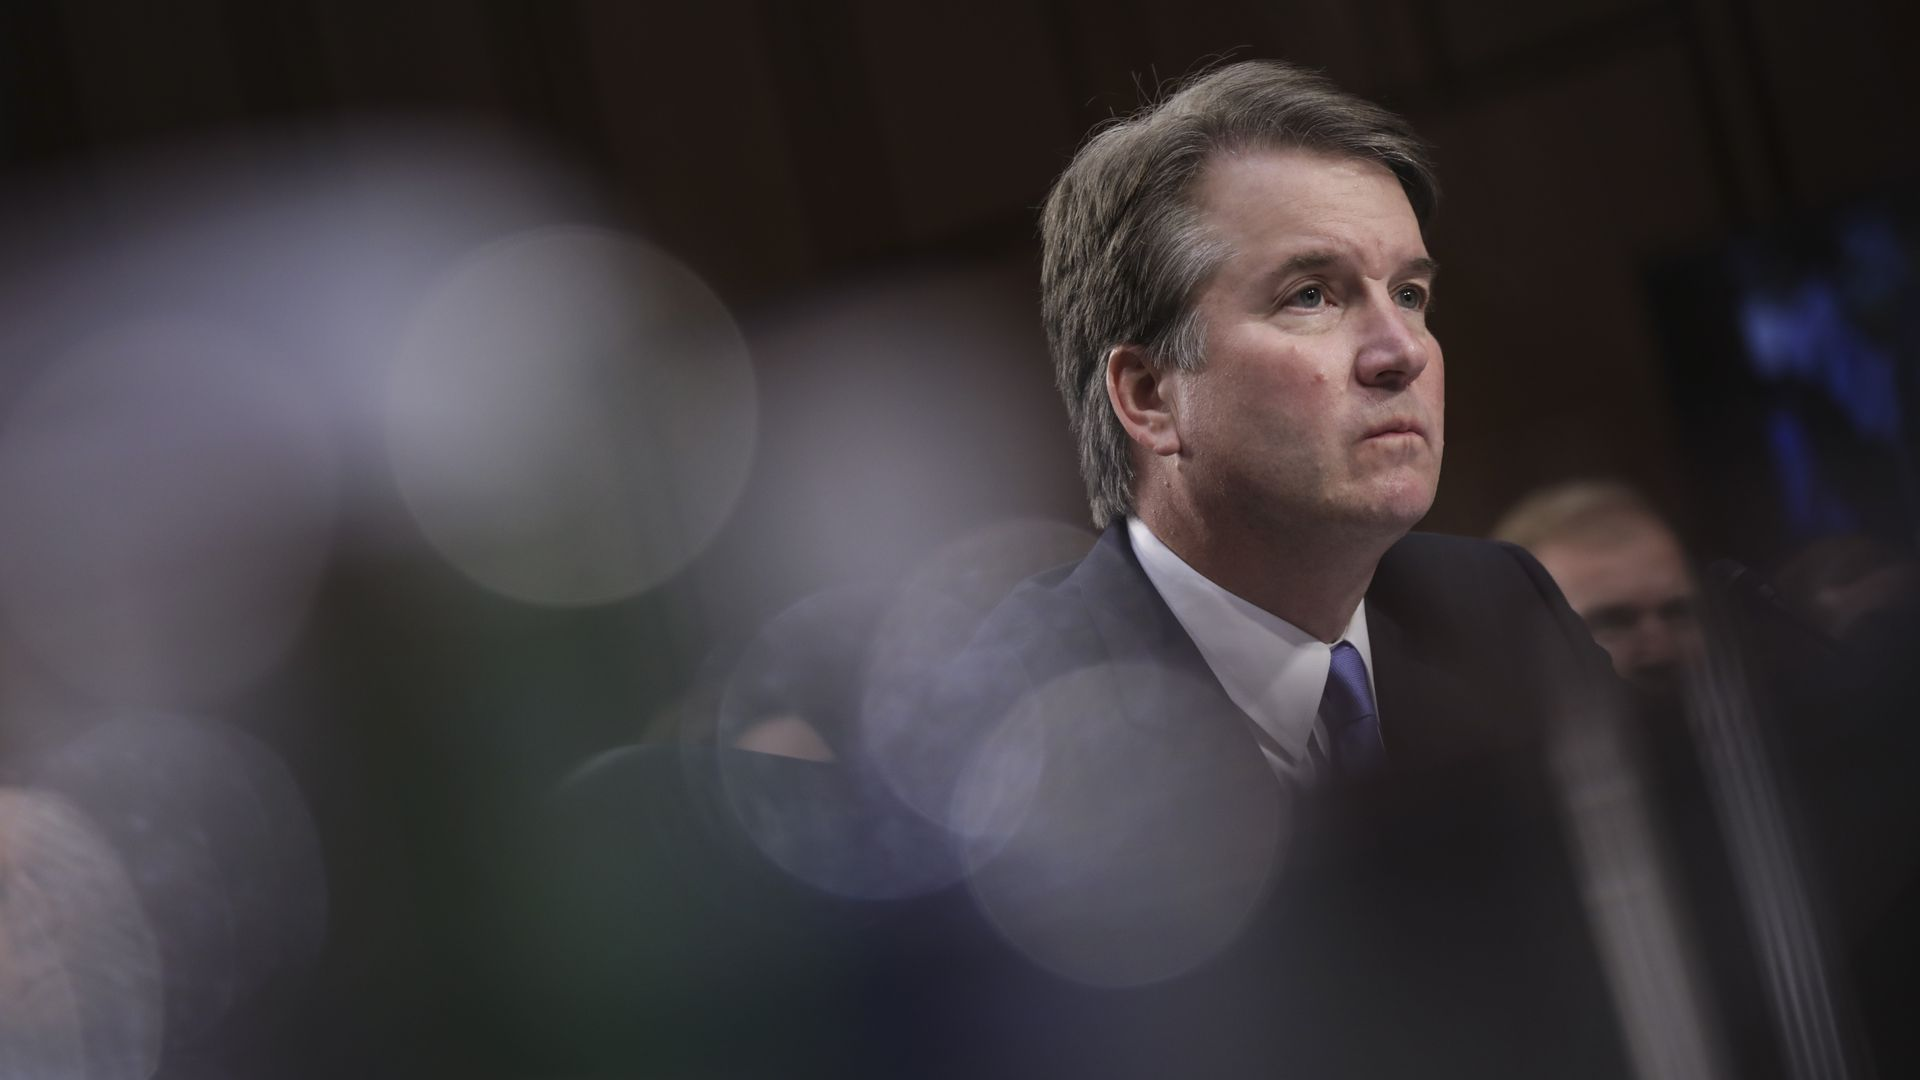 Supreme Court nominee Judge Brett Kavanaugh. Photo: Drew Angerer/Getty Images